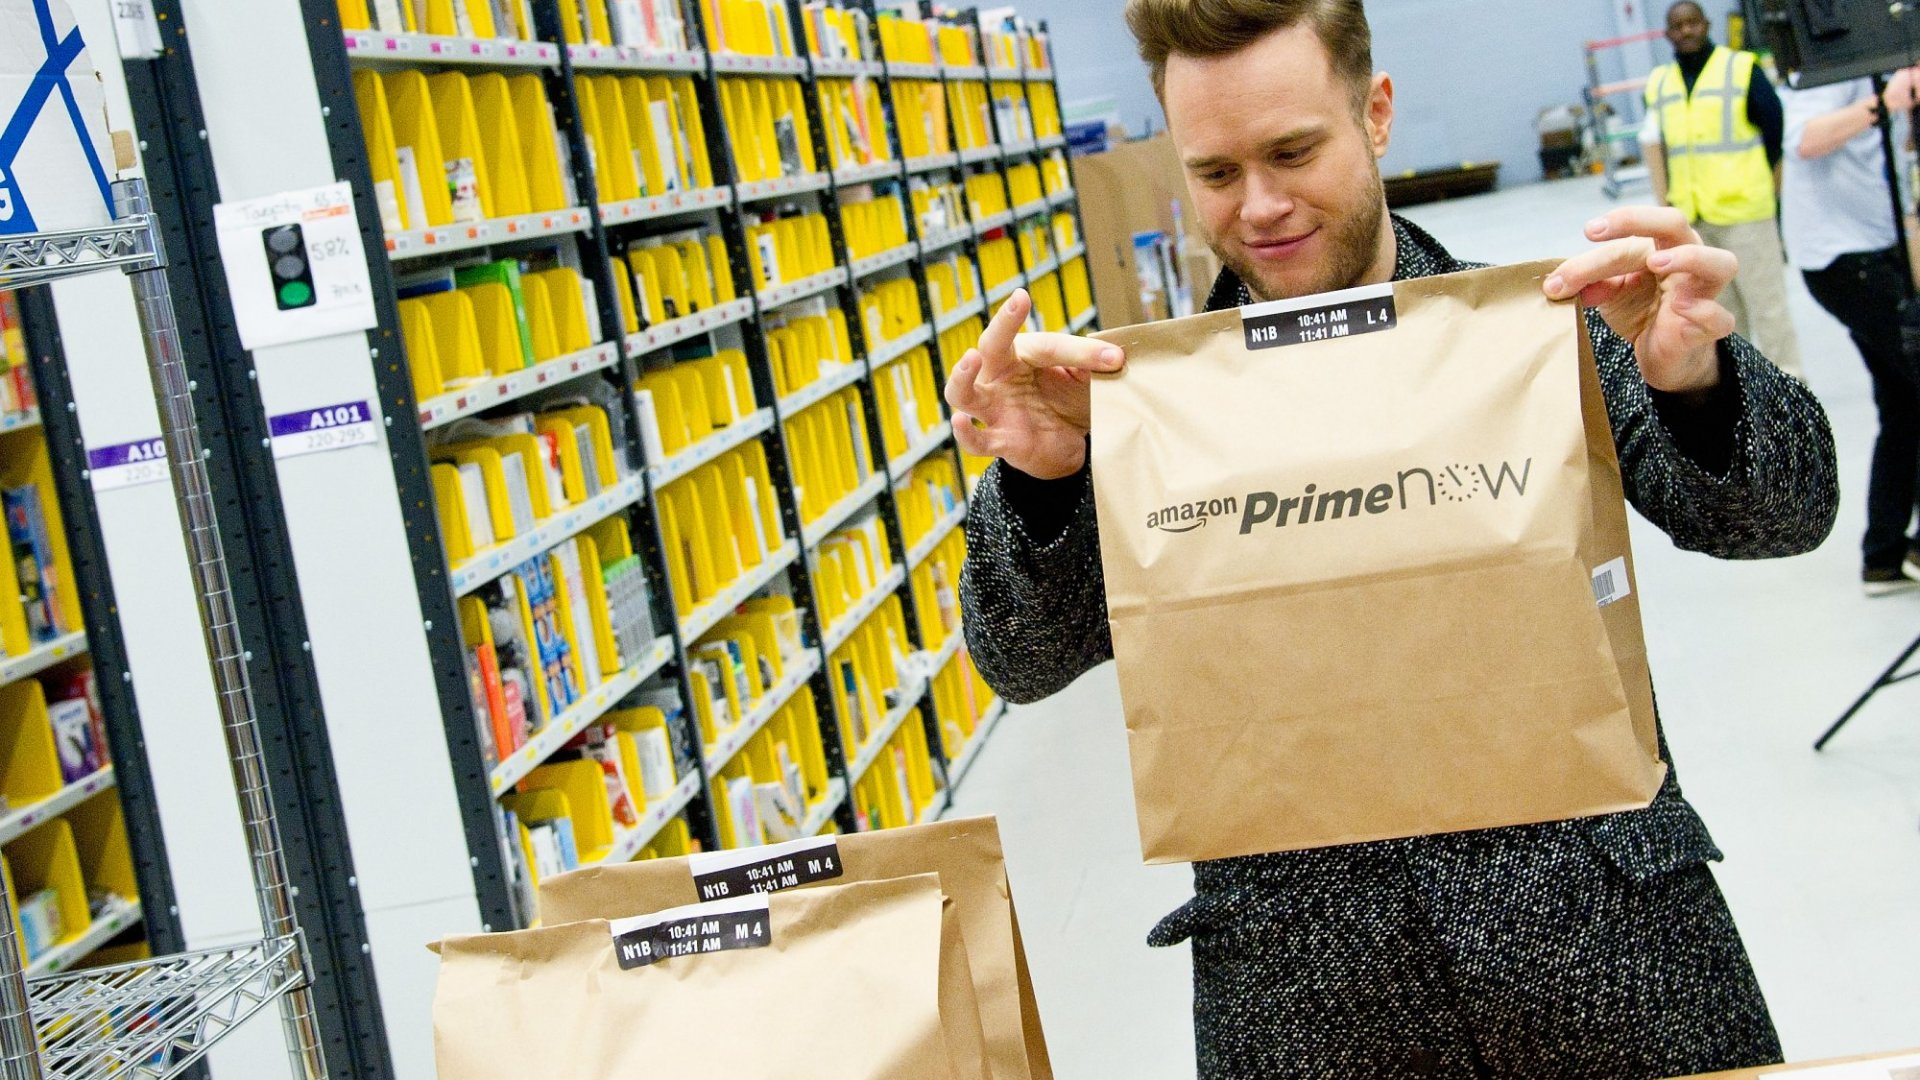 With Amazon Prime Day Under Way, the Expected Boost in Membership Doesn't Look Too Good for Cable TV